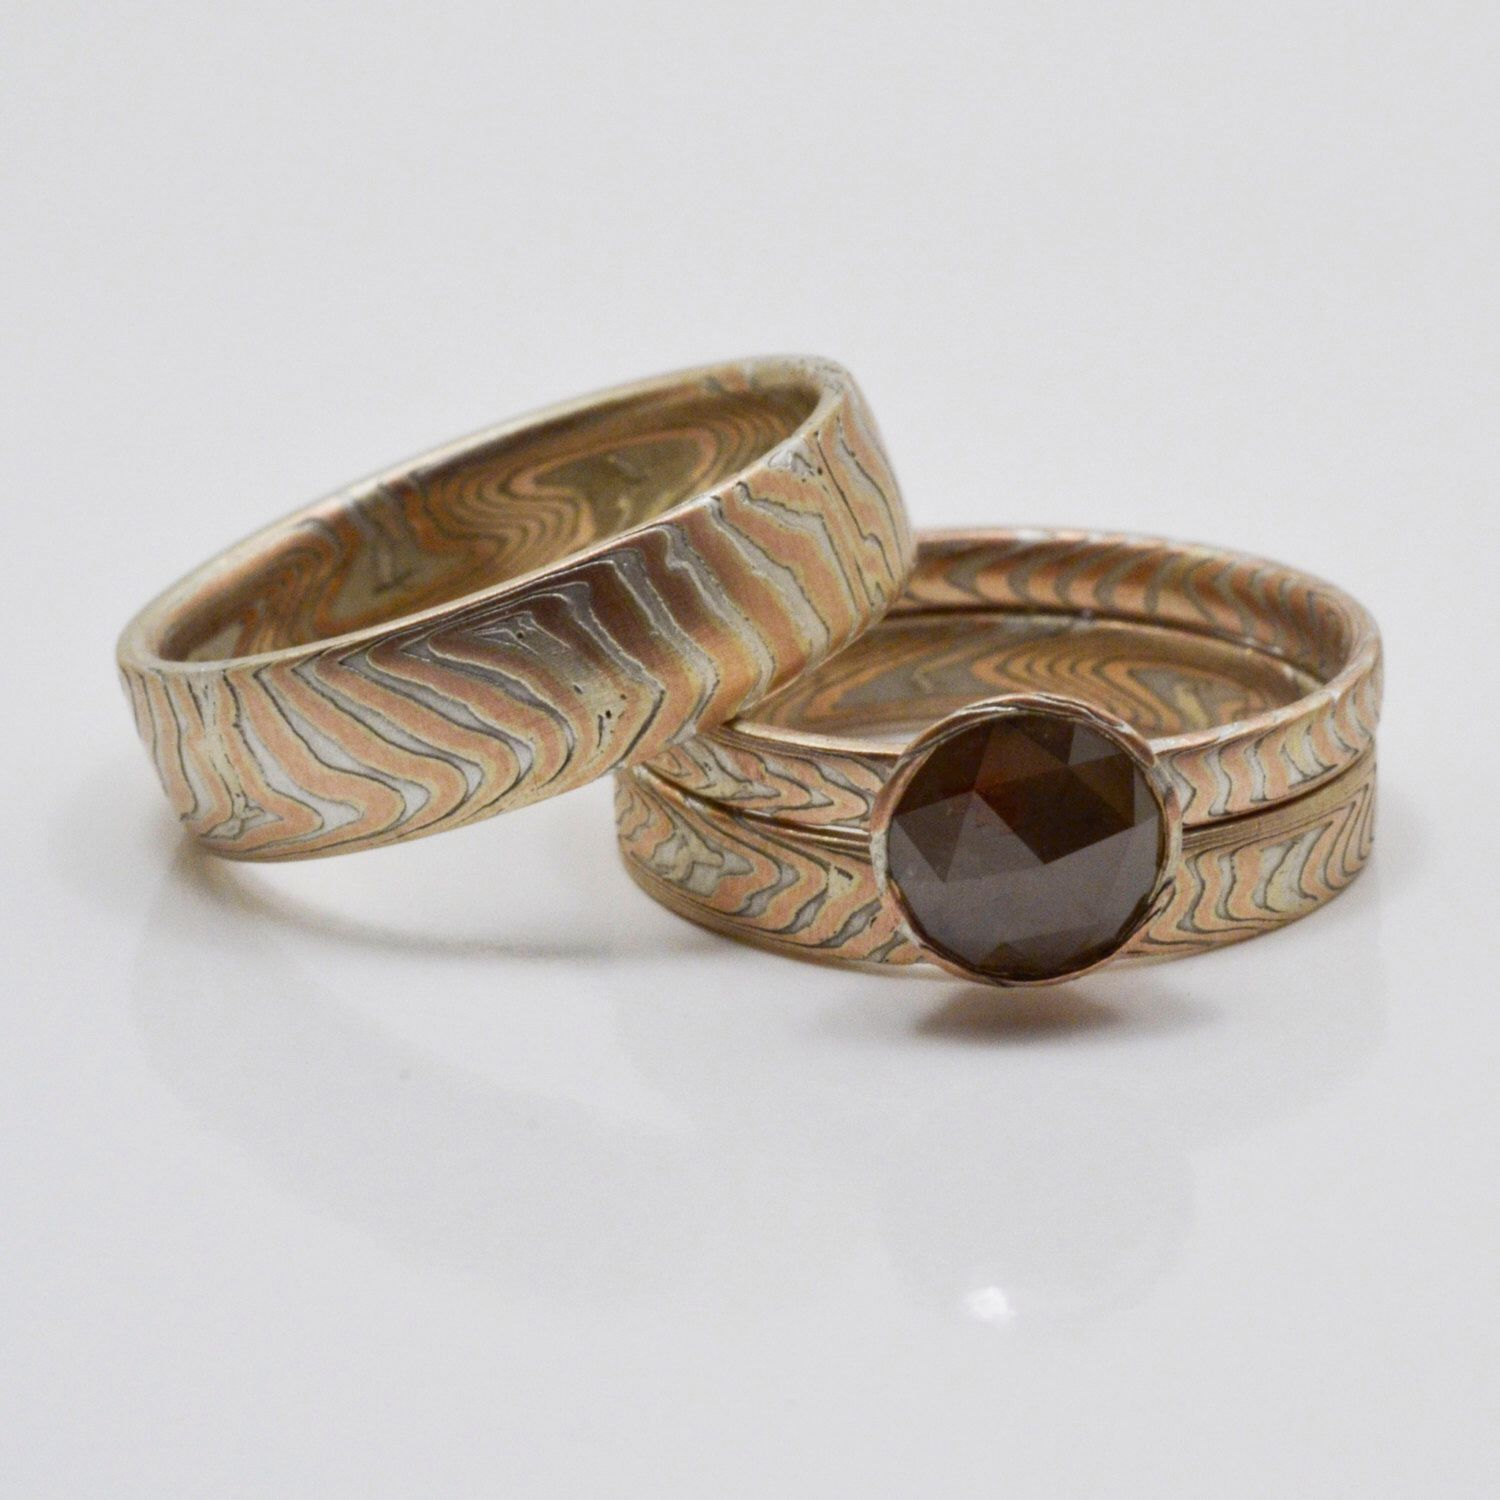 Matched Wedding Set in 14kt Red Gold and Sterling Silver Mokume